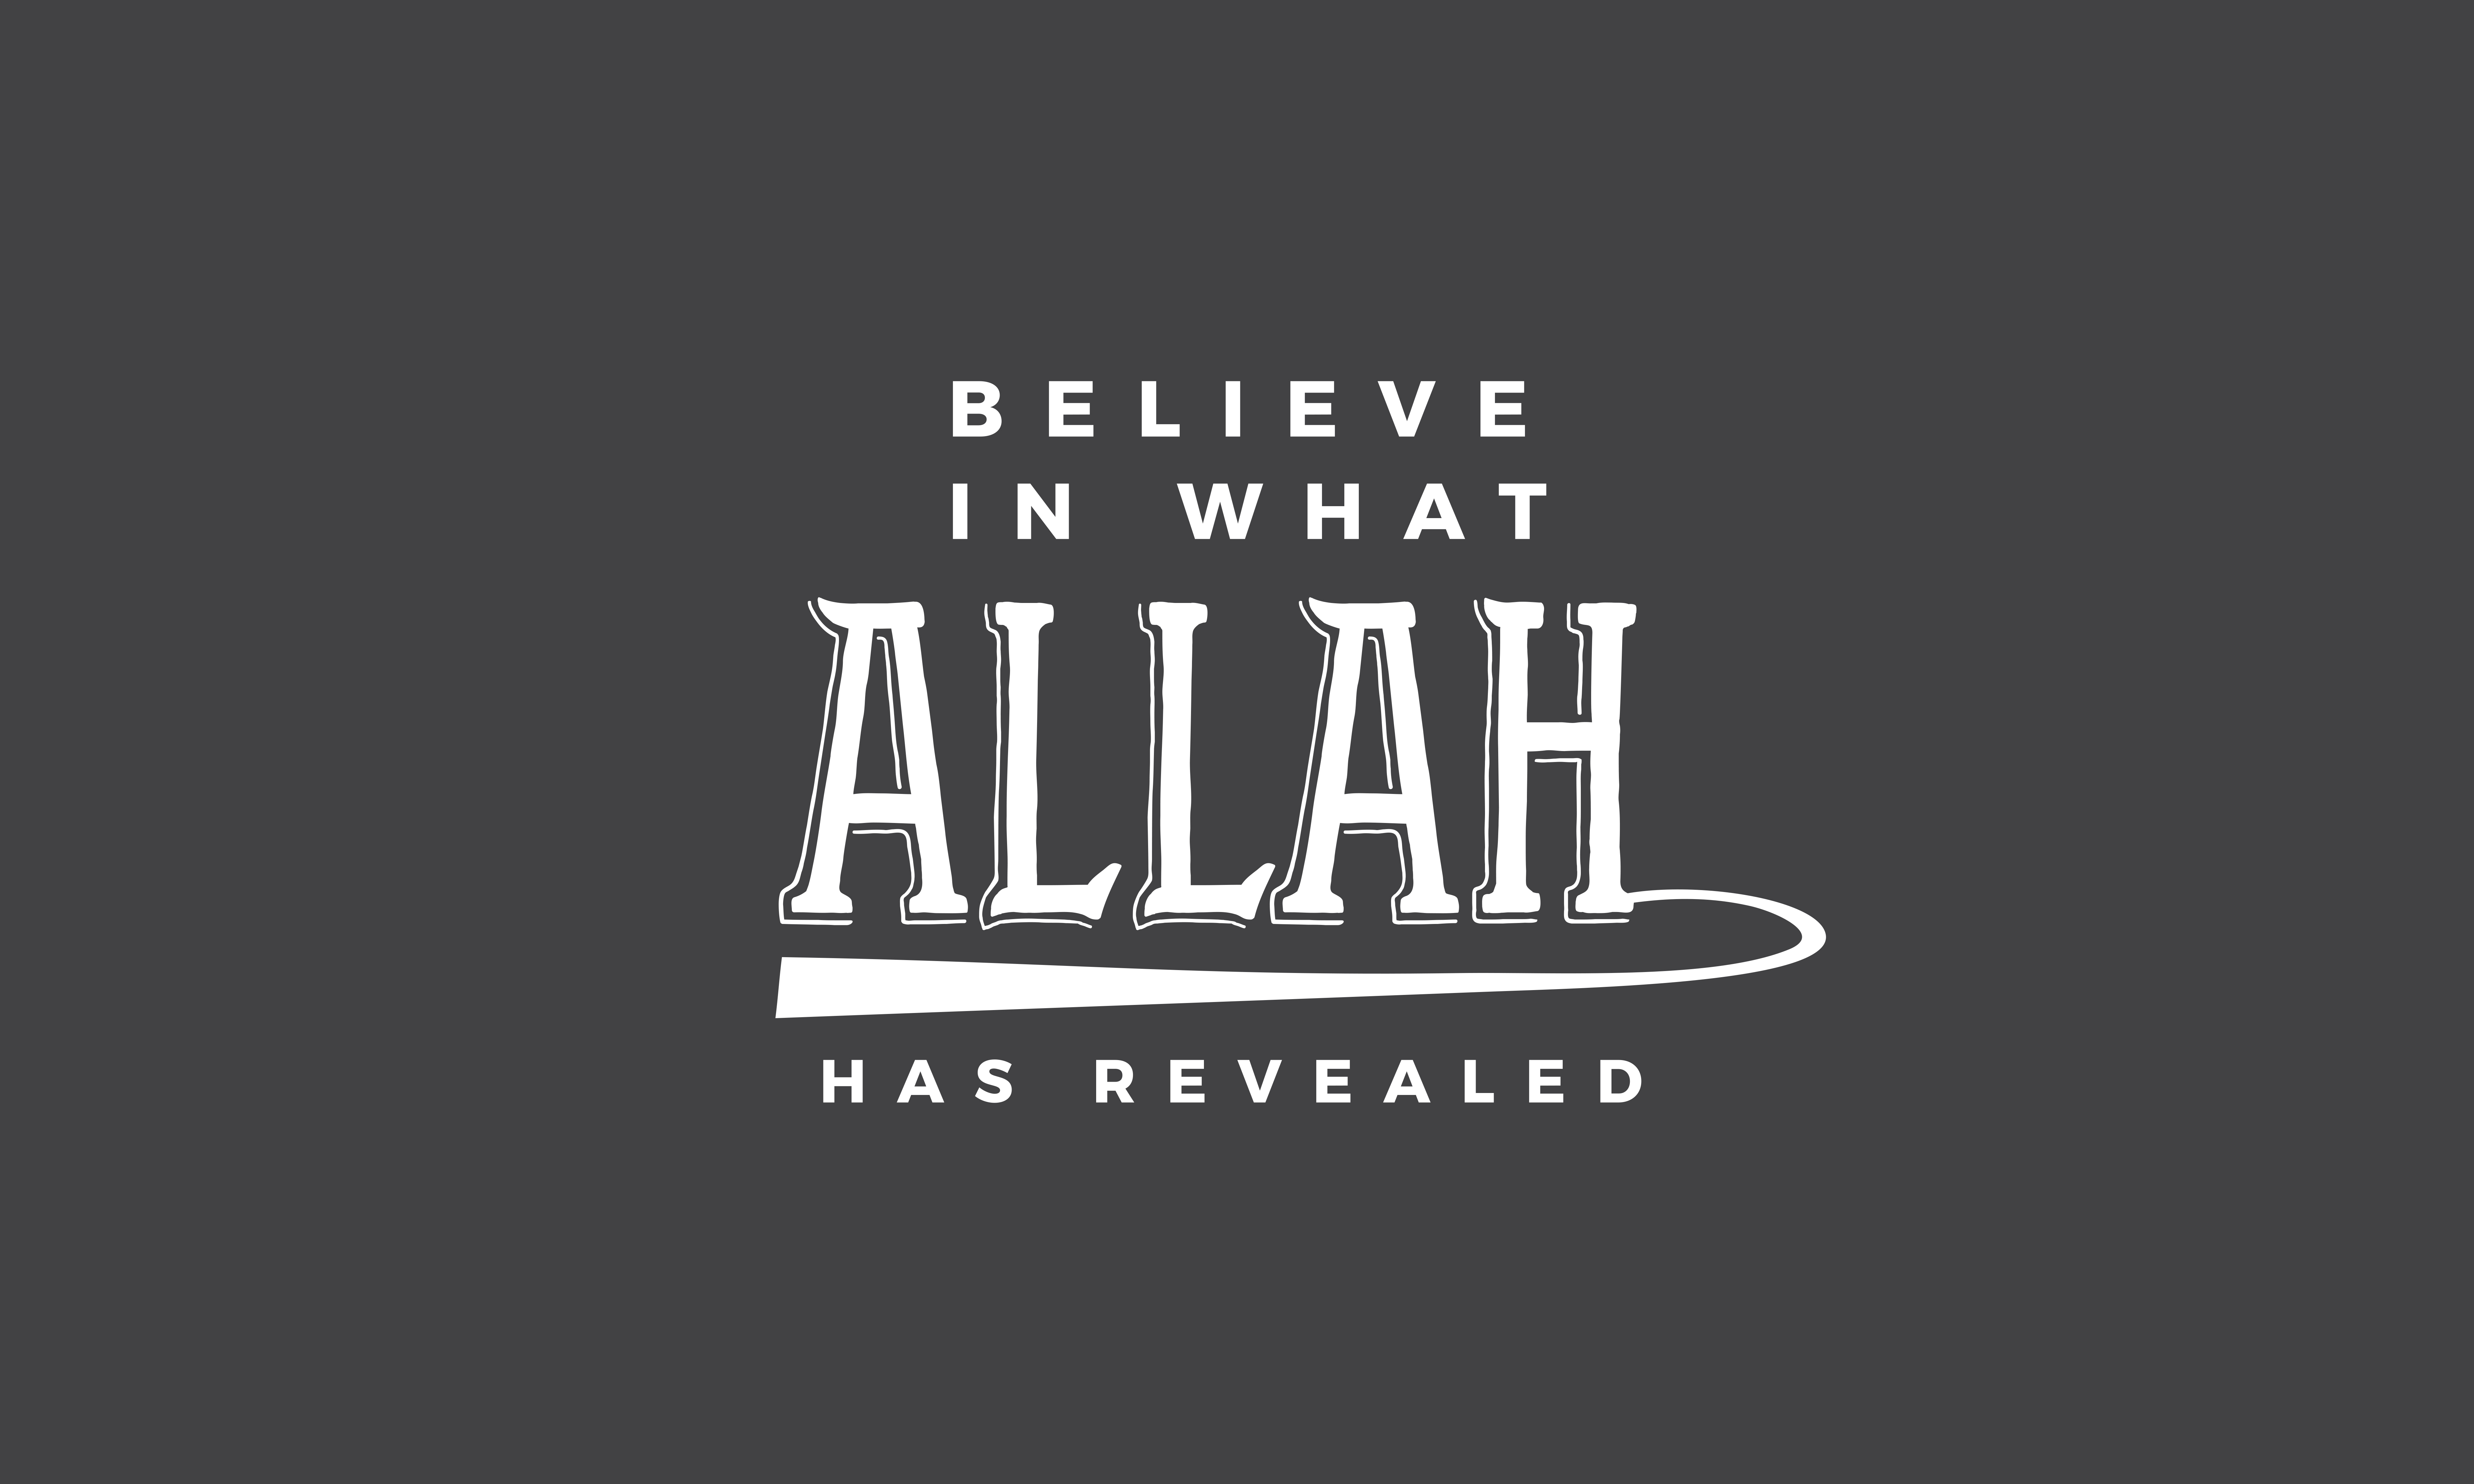 Download Free Believe In What Allah Has Revealed Graphic By Baraeiji for Cricut Explore, Silhouette and other cutting machines.